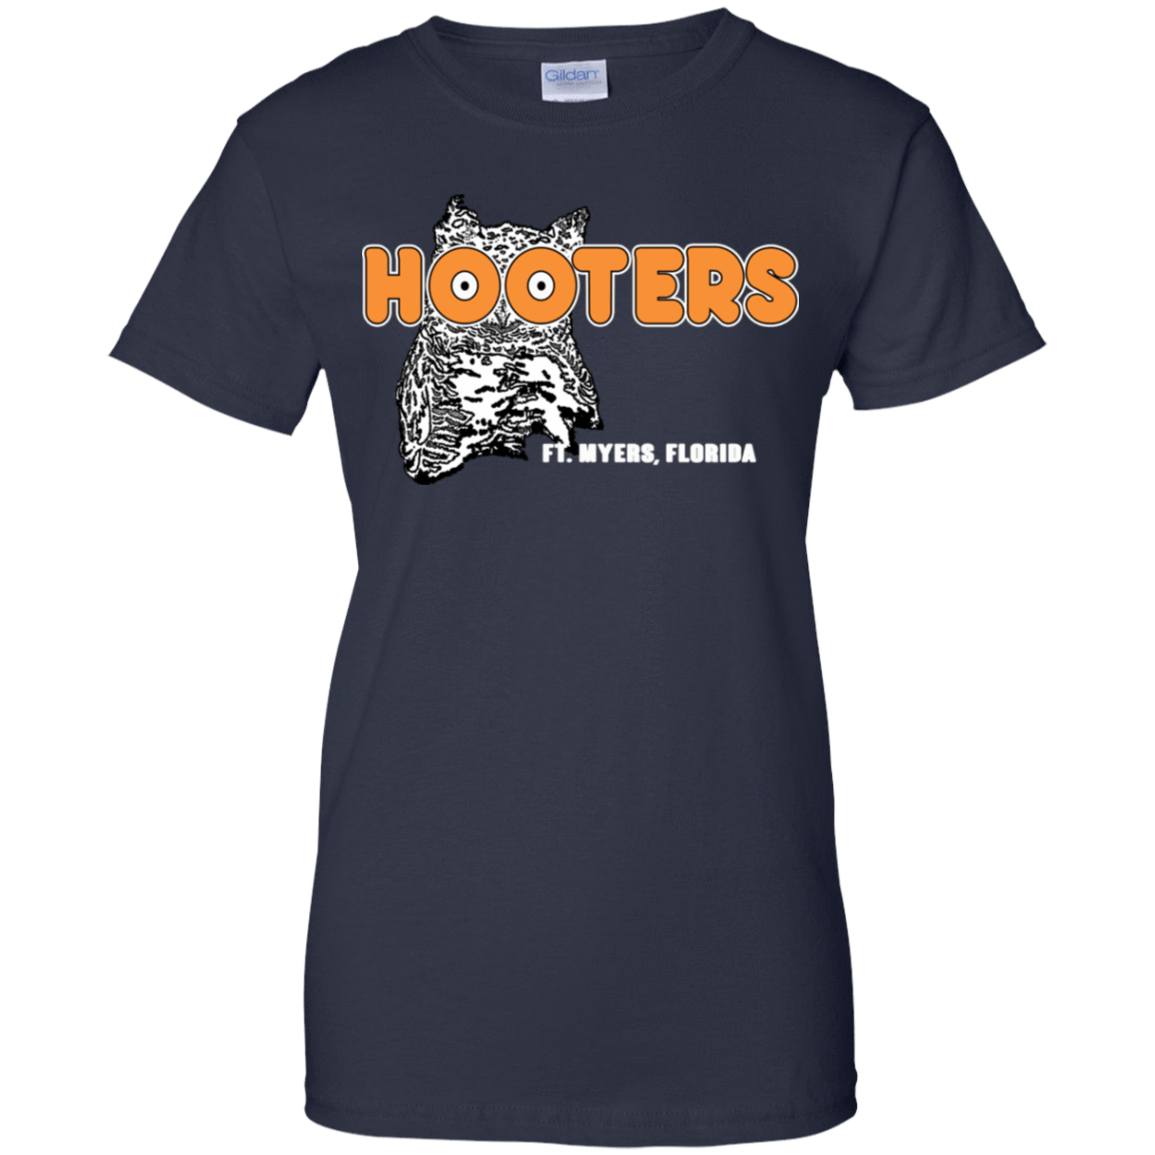 Hooters T-Shirts Fort Myers, Florida 939-9259-73155977-44765 - Tee Ript